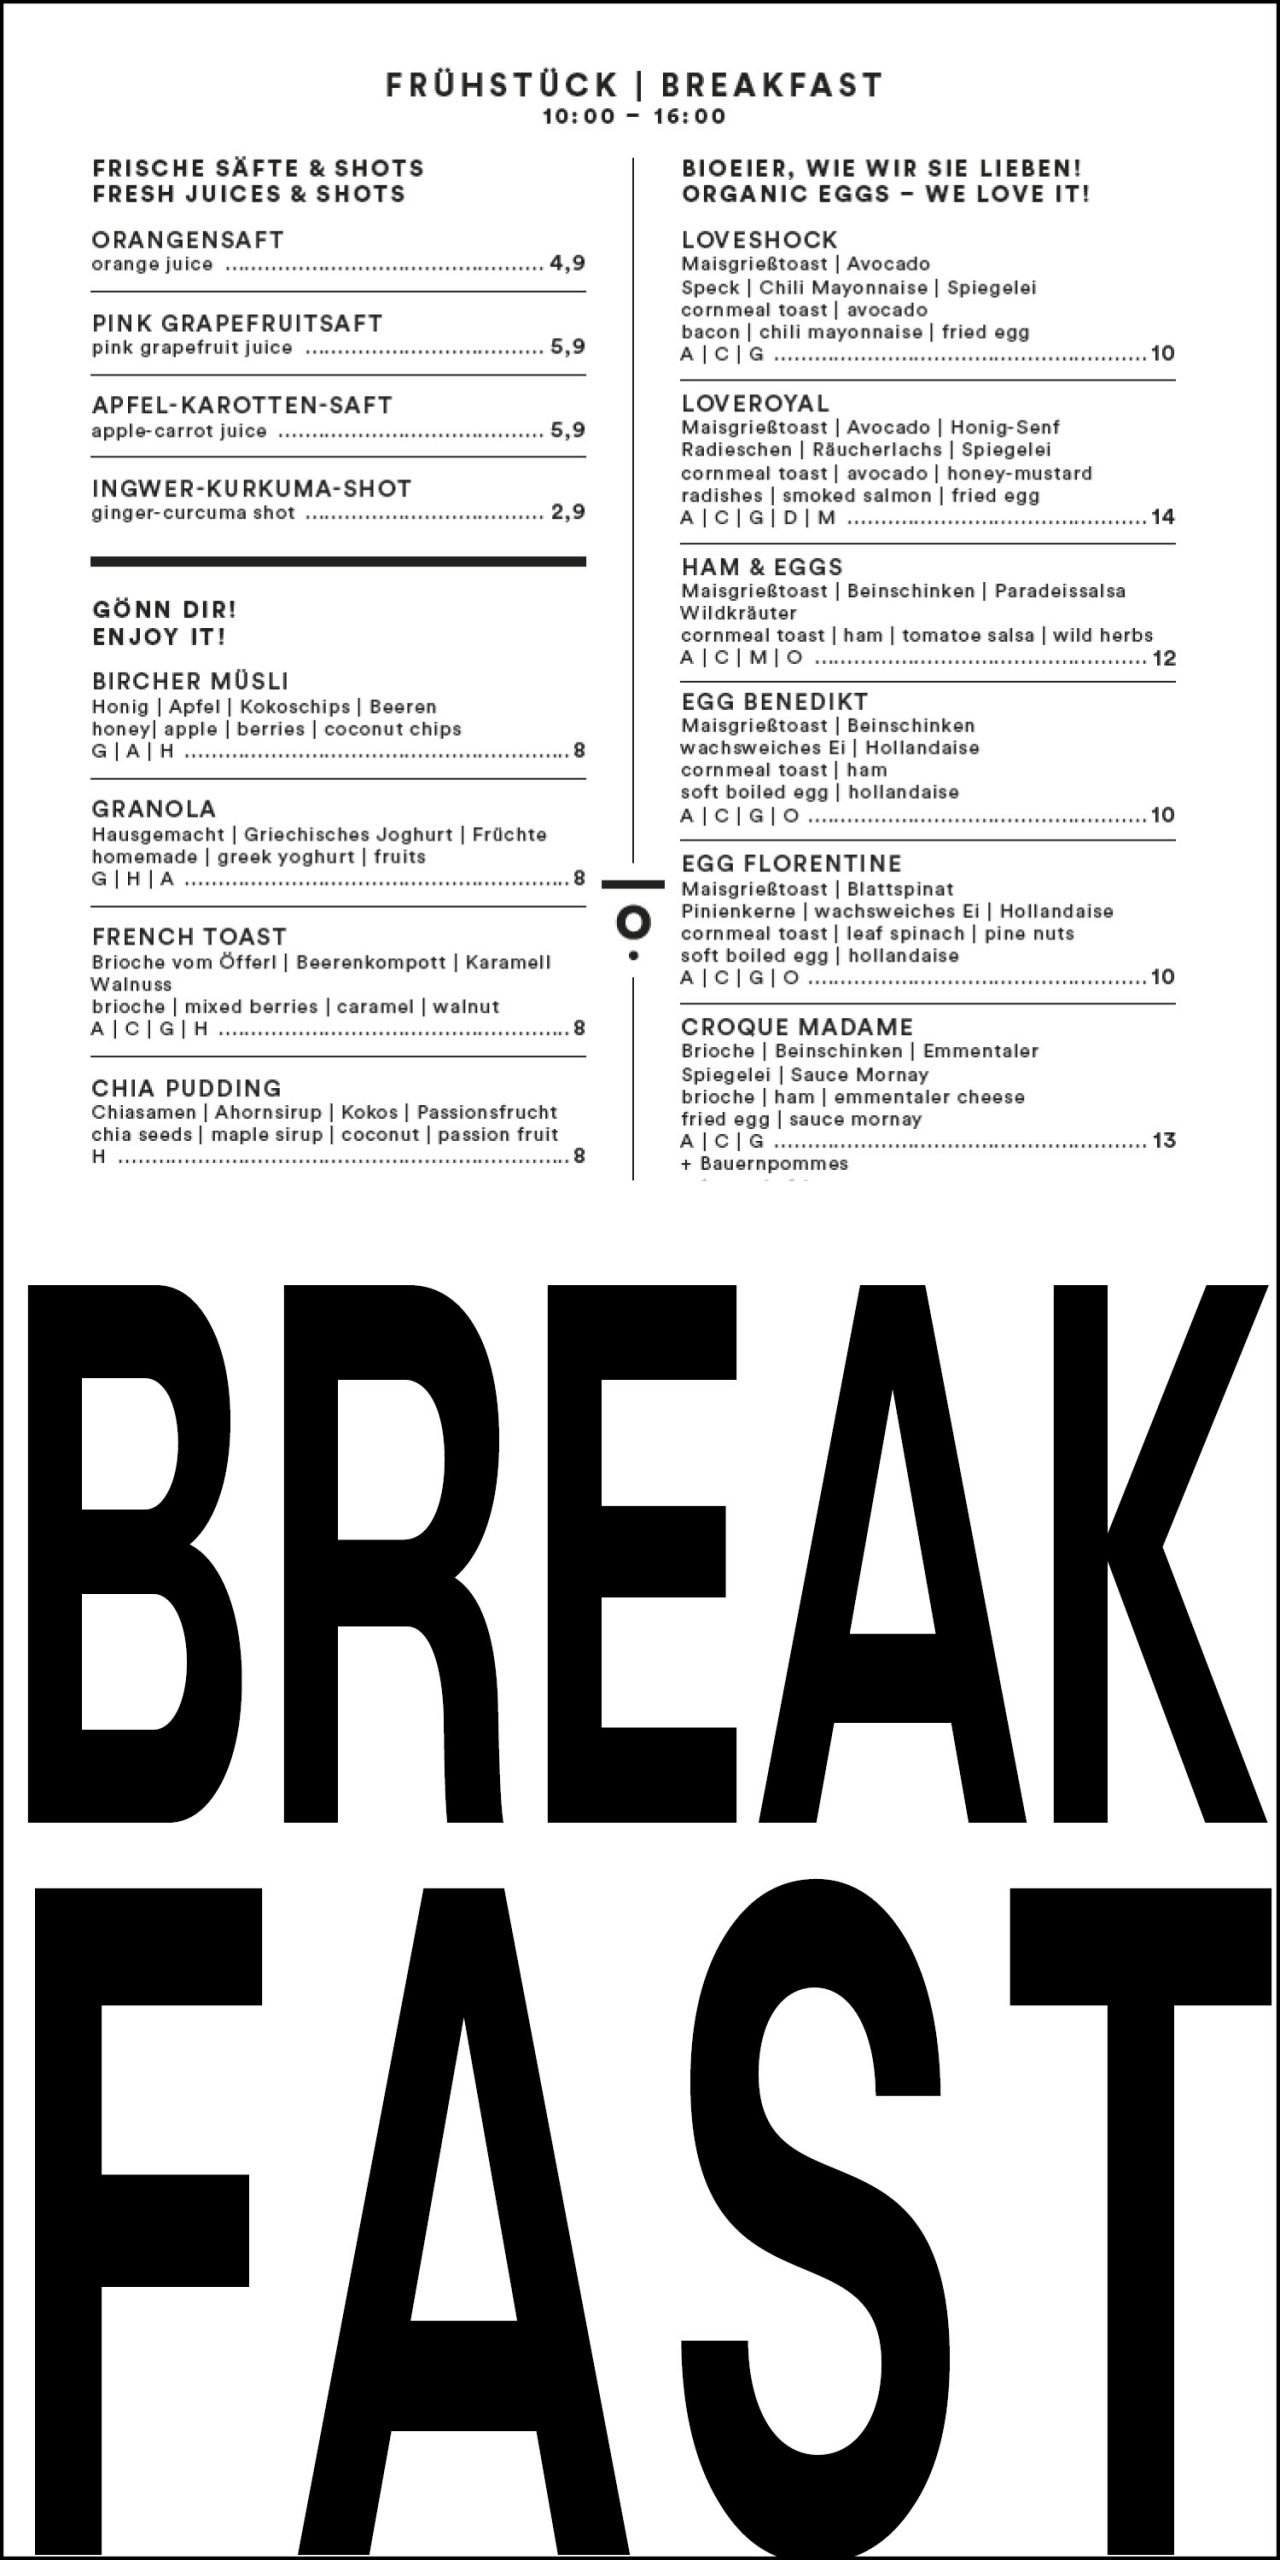 breakfast menu from salonplafond